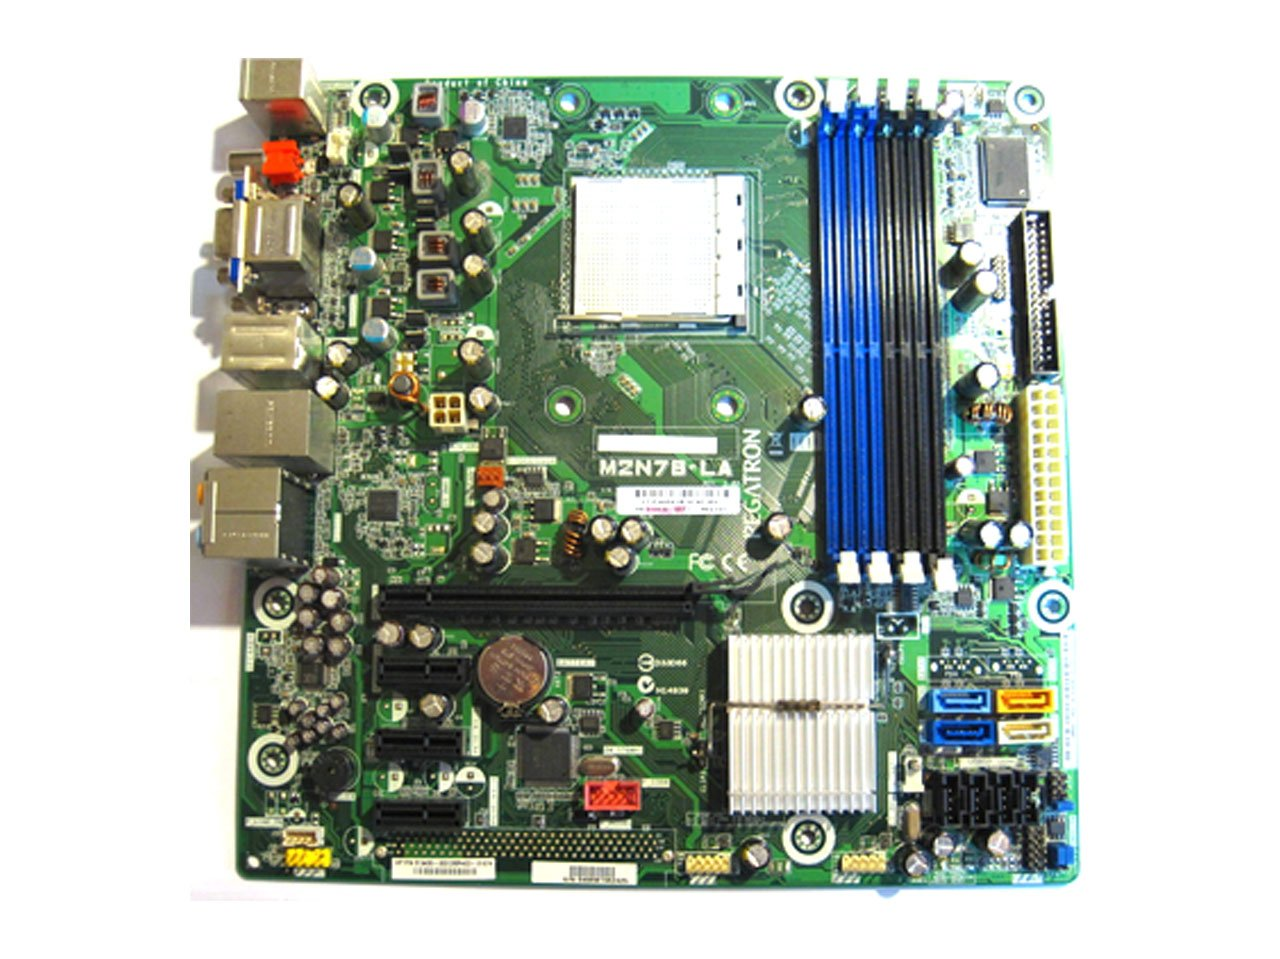 Hp Pavilion A6000 Motherboard Manual Laptop Wiring Diagram P6000 U2022 Dv7 Motherboards